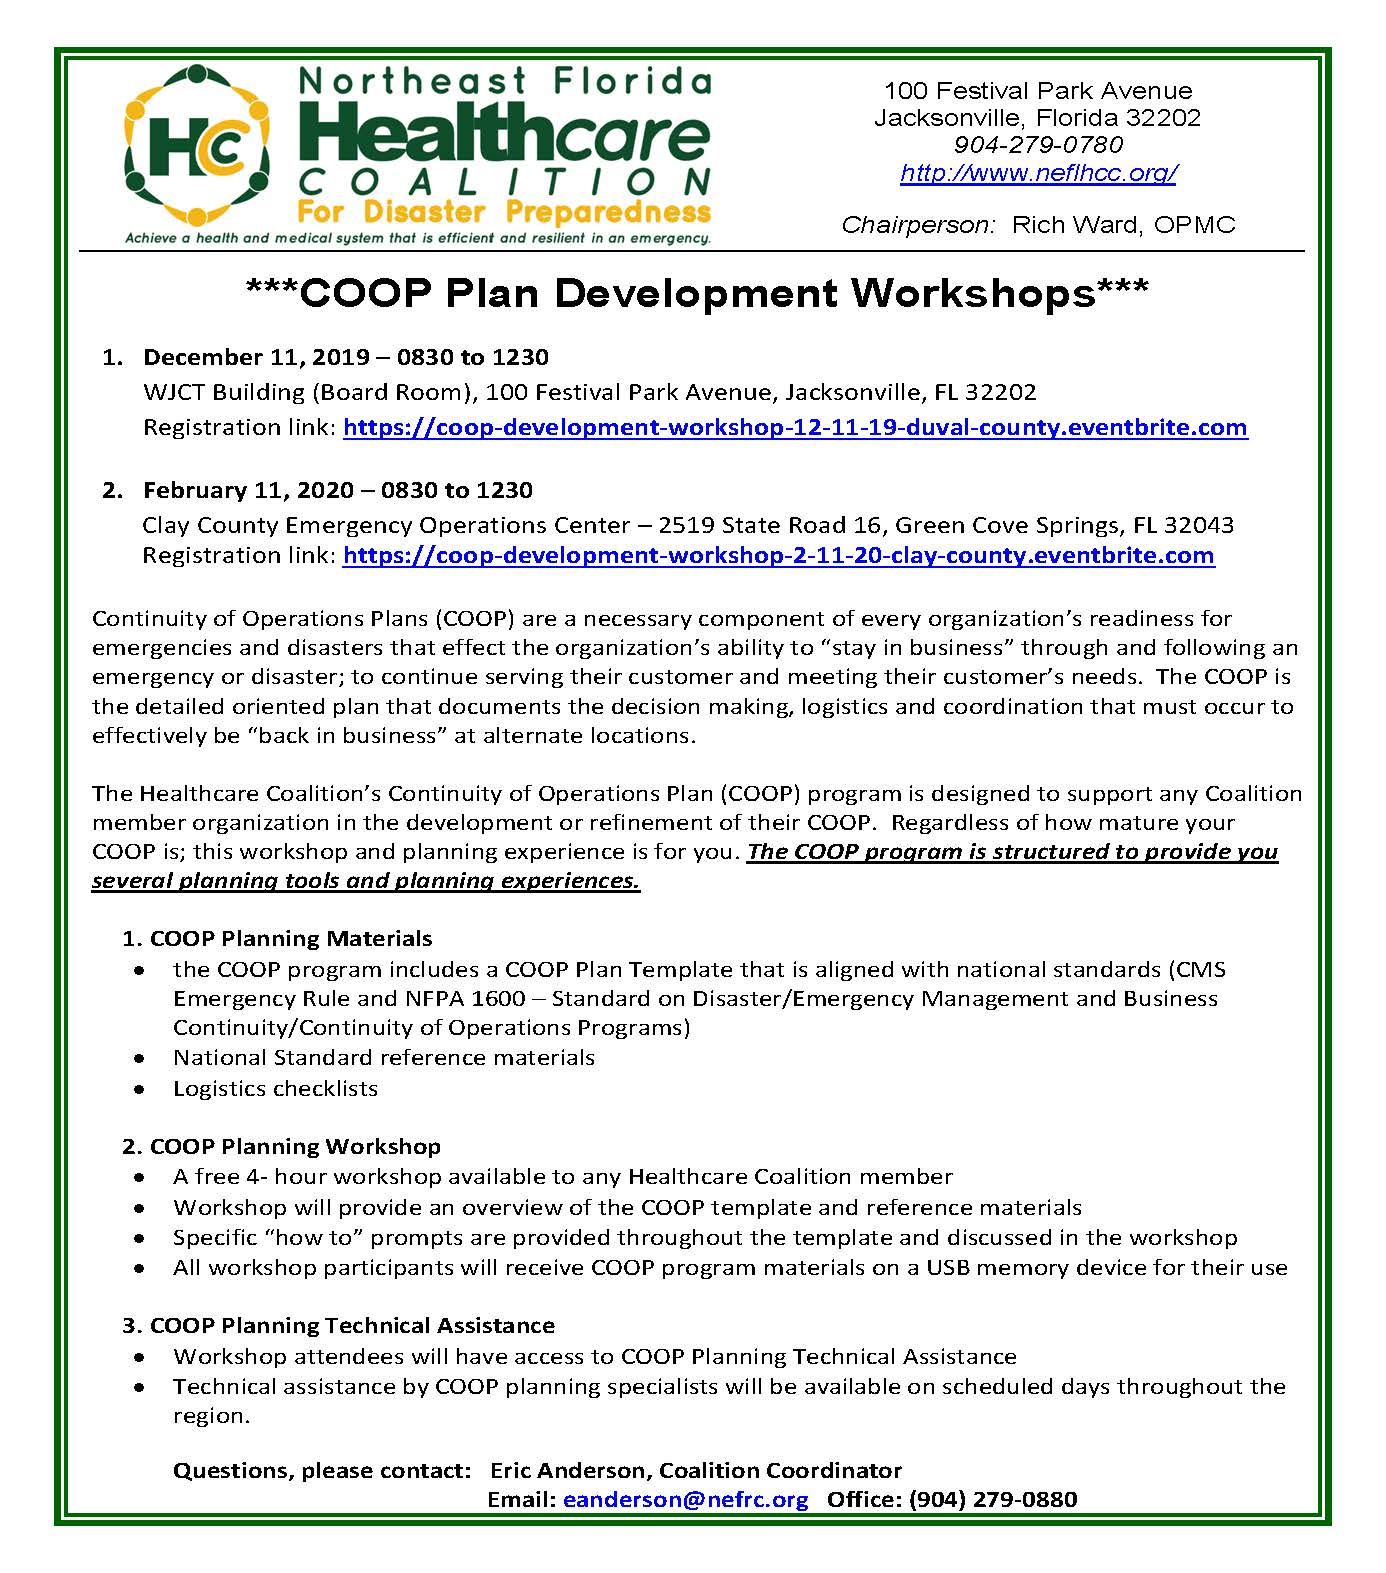 Continuity-of-Operations-Plan-Development-Workshops-Free-Class-004